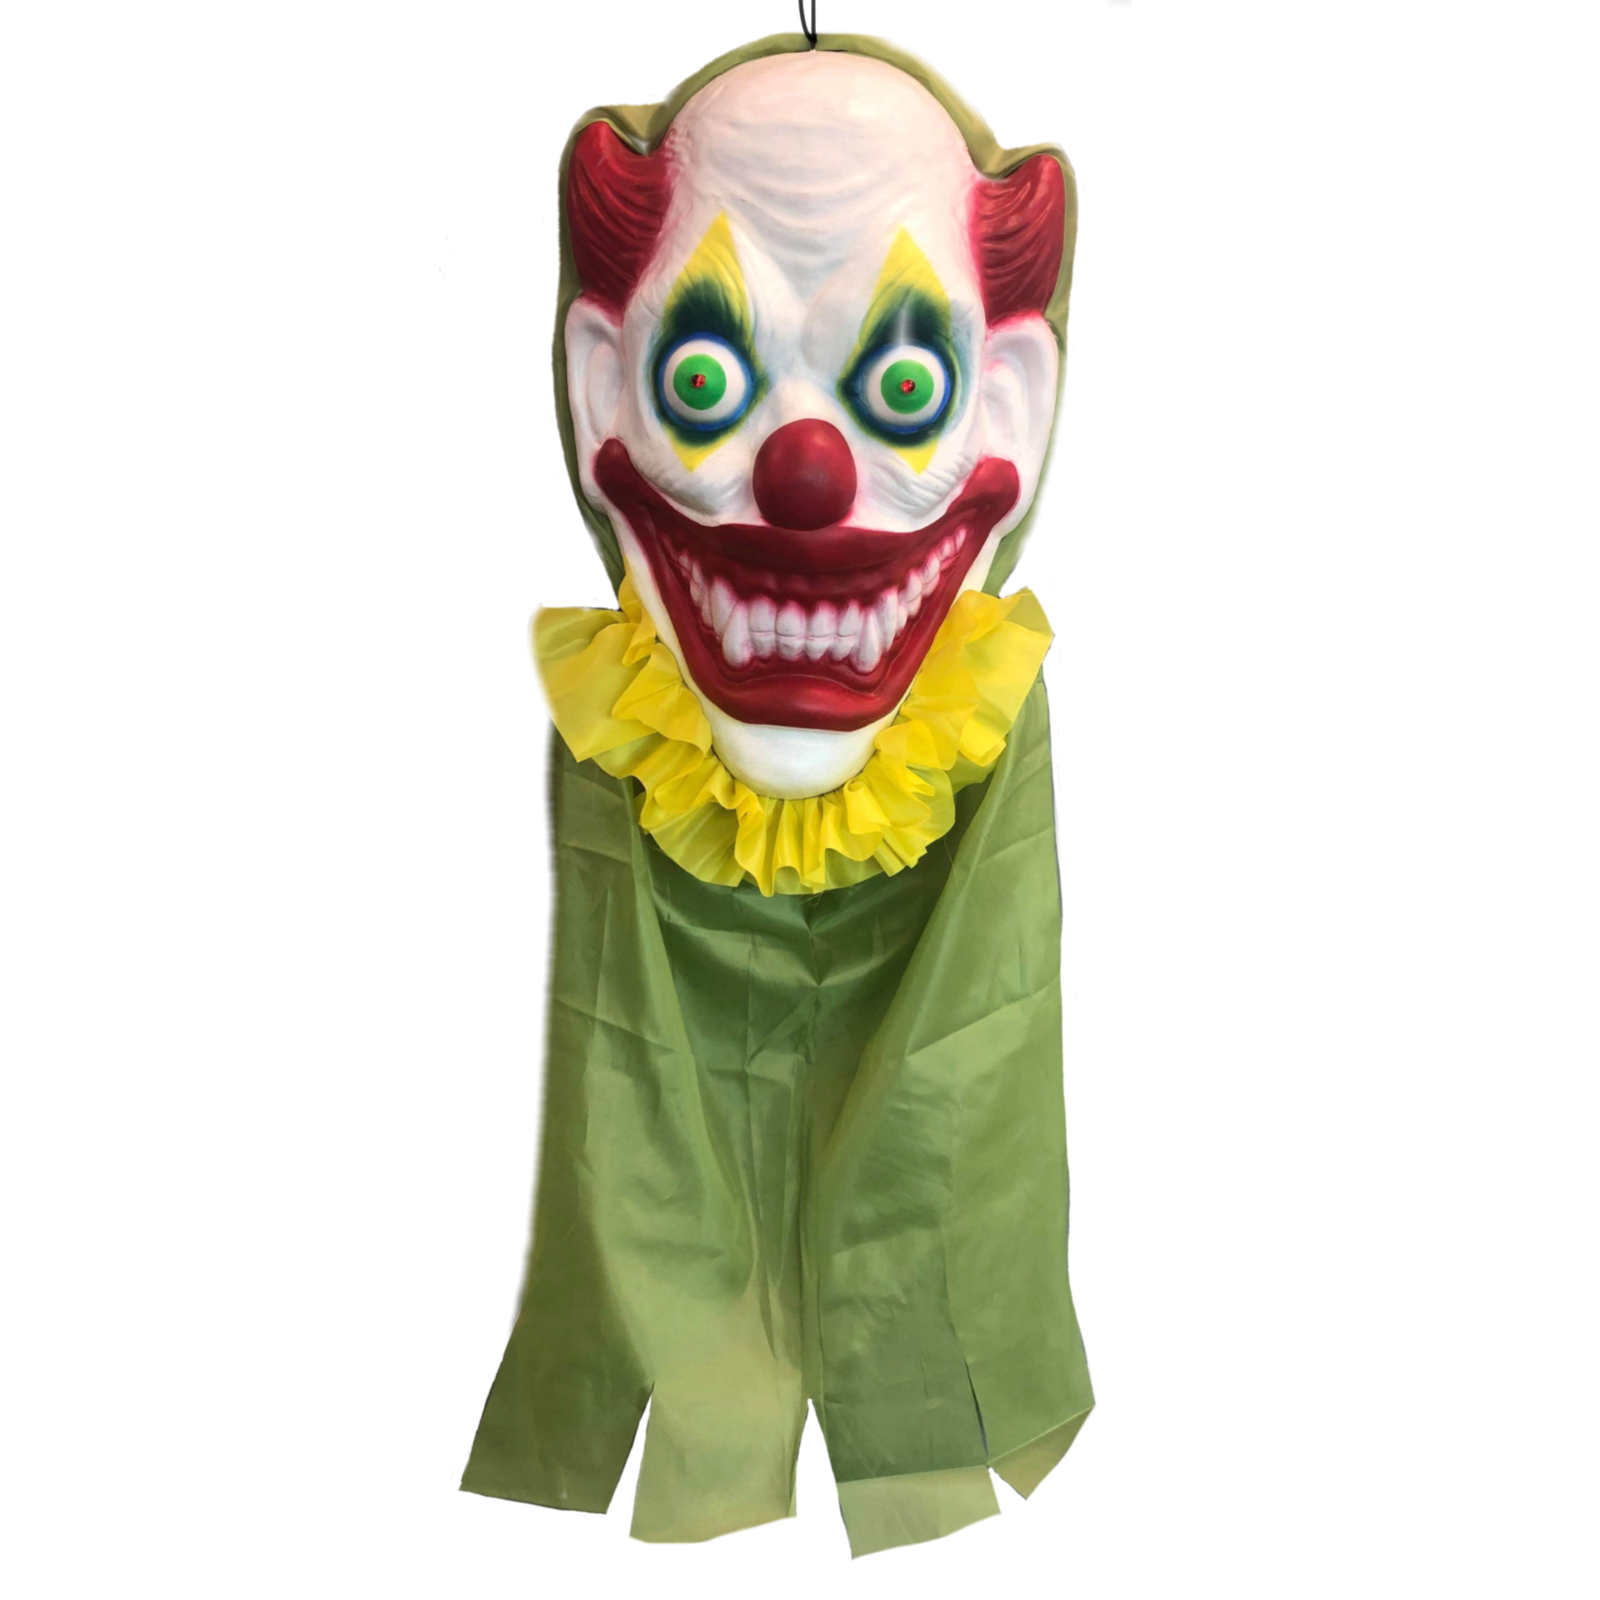 Giant Hanging Clown Head with Lights and Sound - Buy Online Only